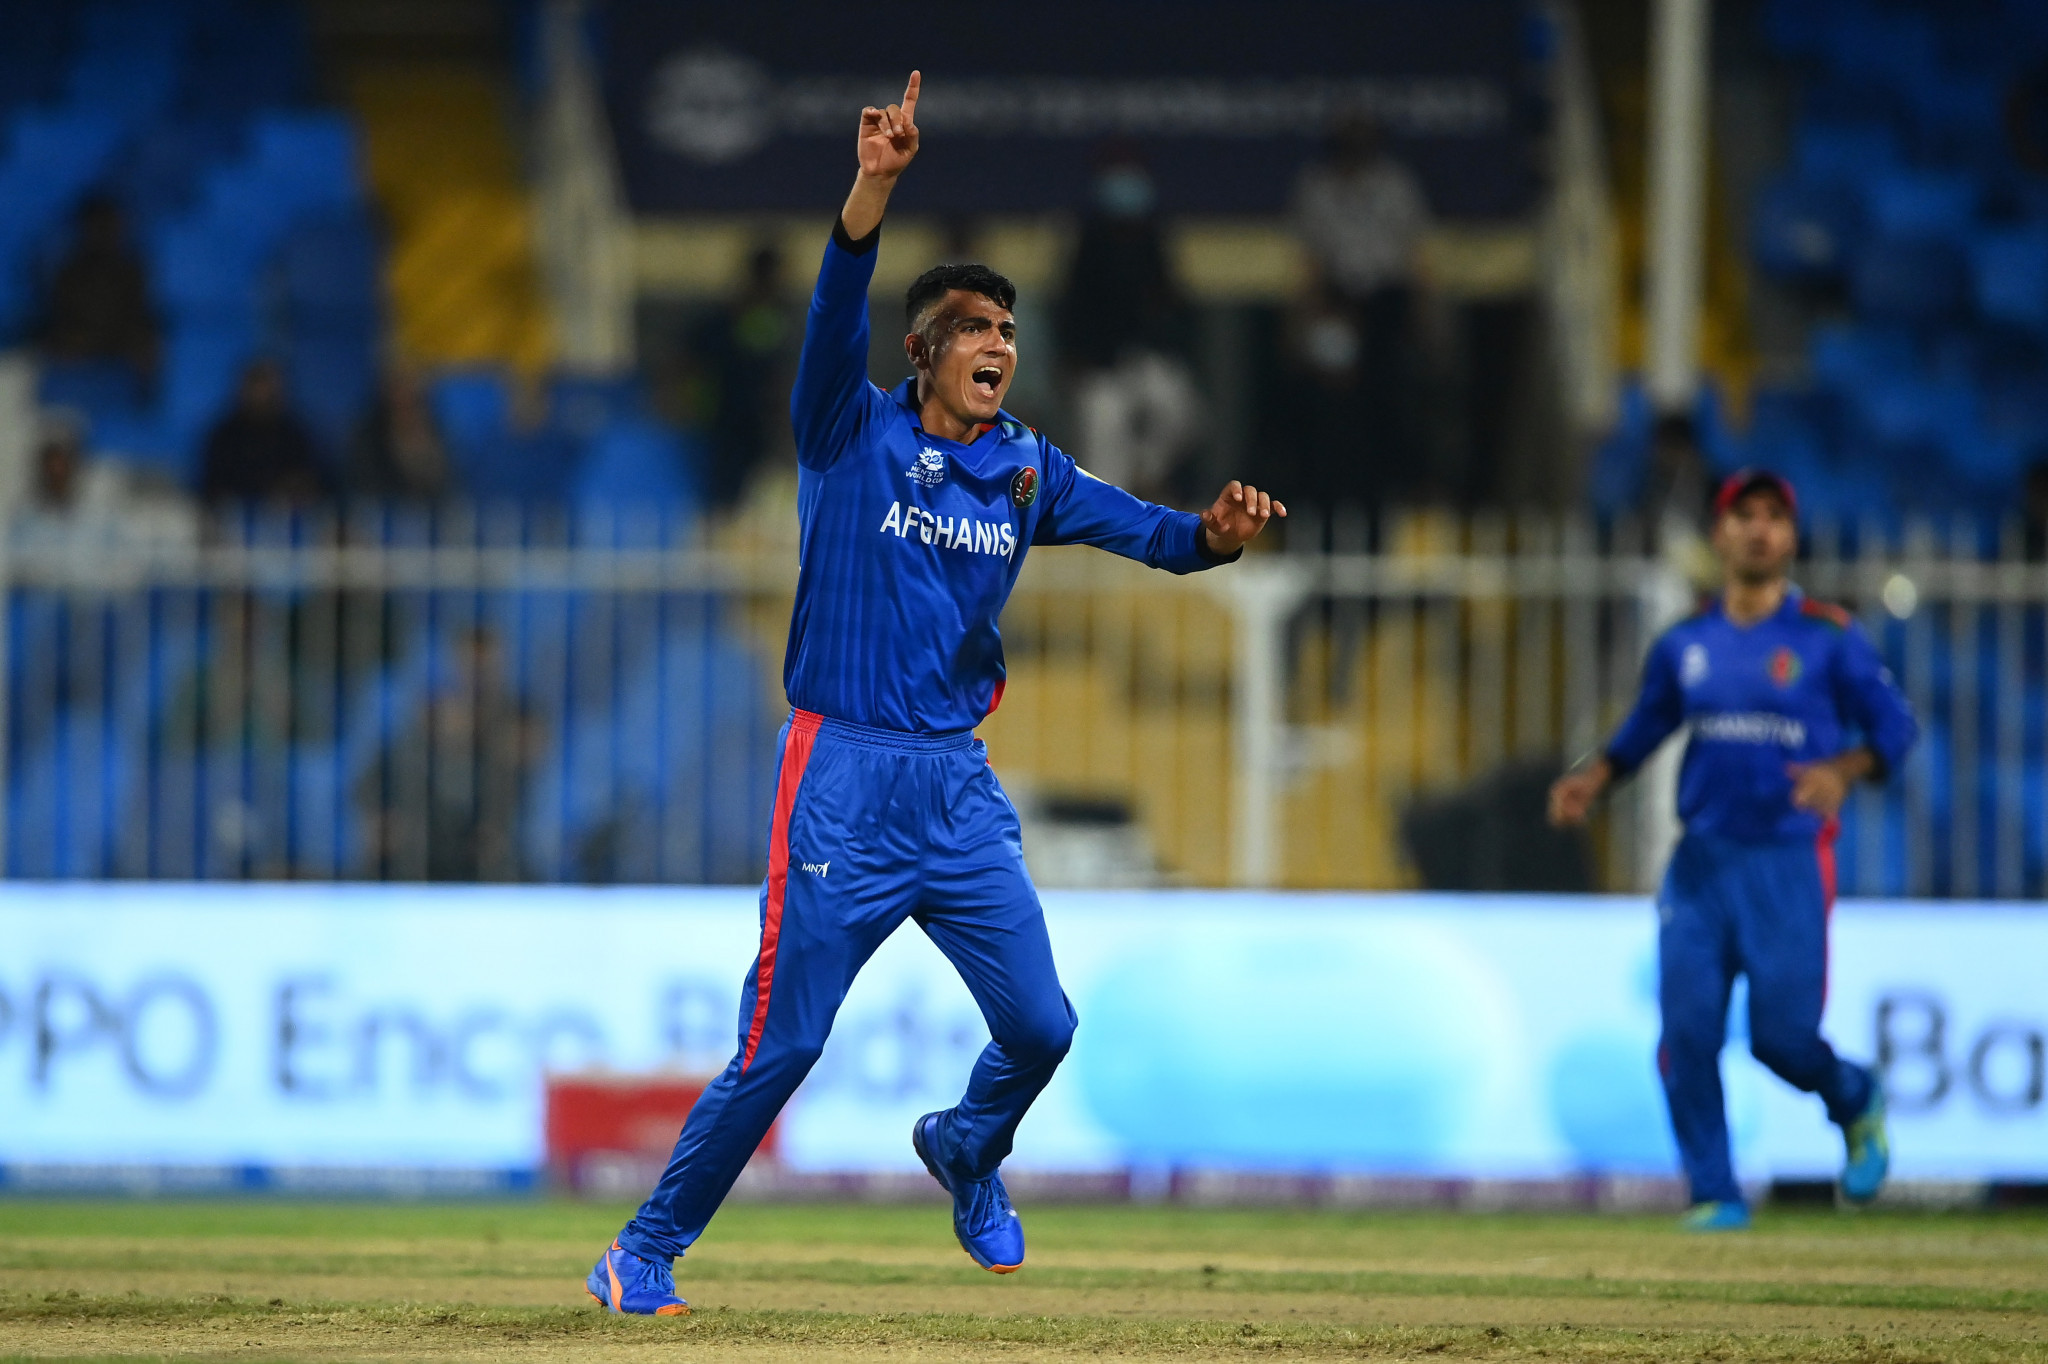 Mujeeb Ur Rahman takes five wickets as Afghanistan hammer Scotland at Men's T20 World Cup